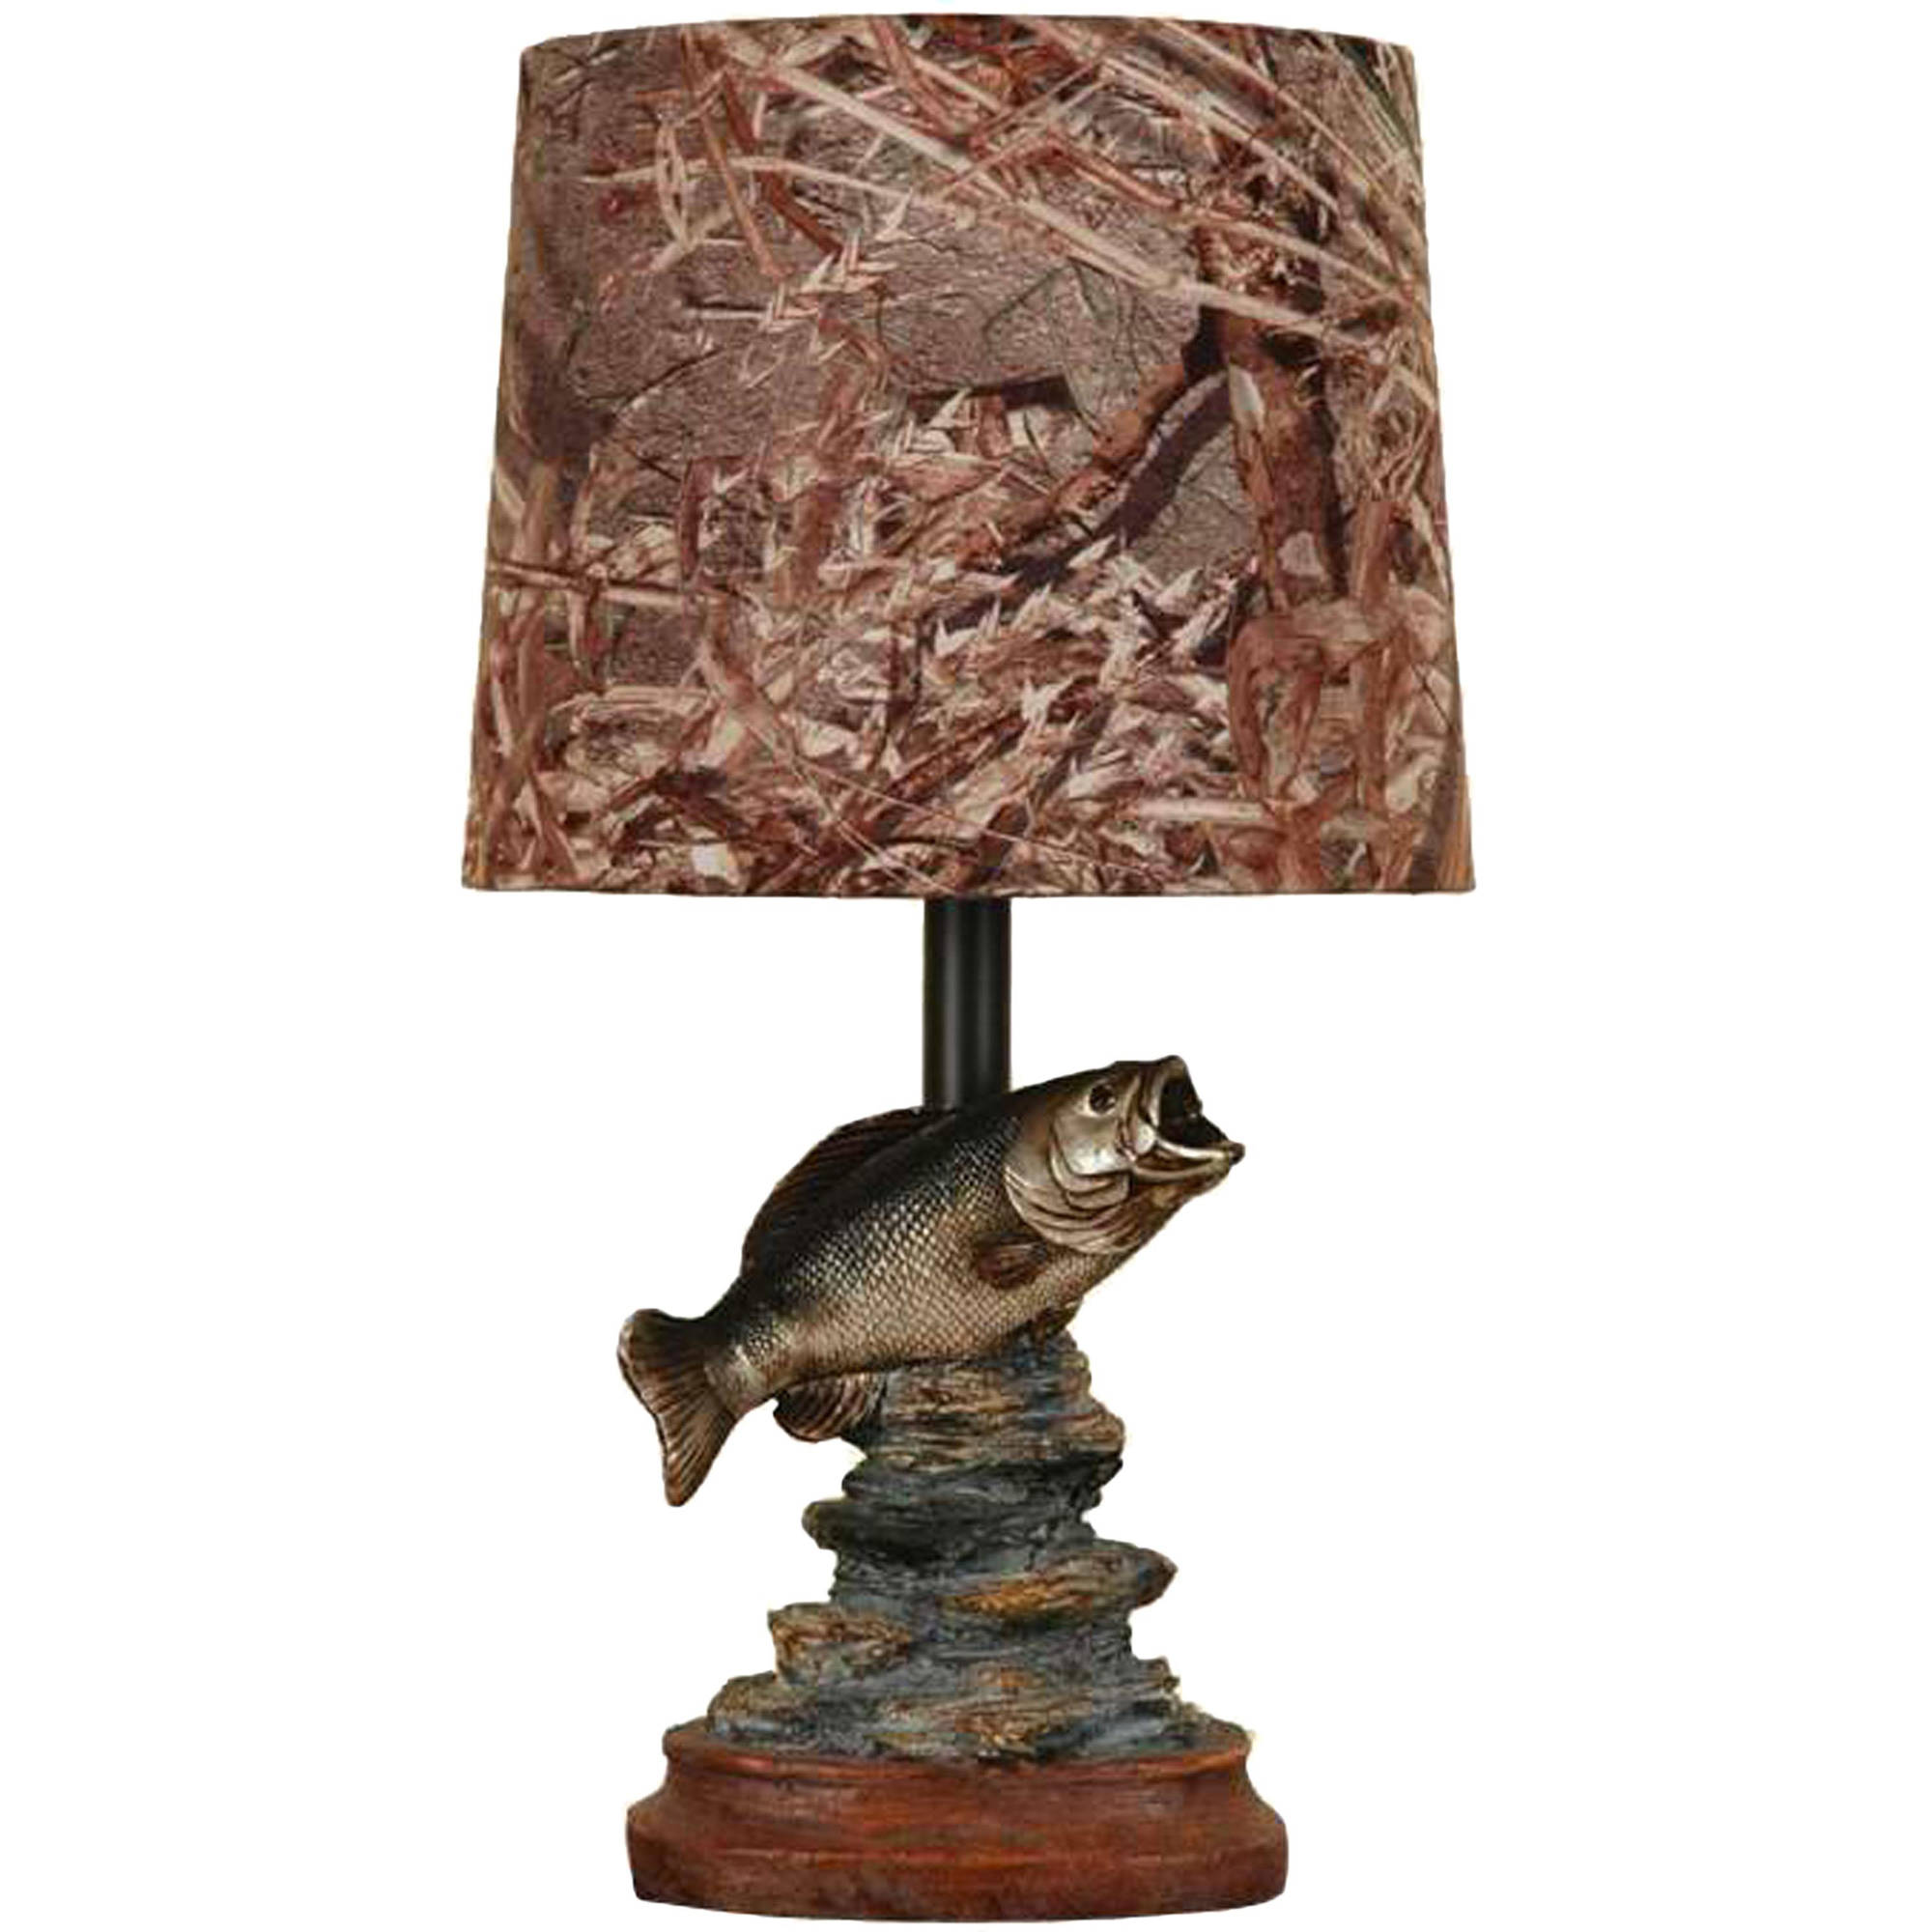 Mossy Oak Fish Accent Lamp, Dark Woodtone